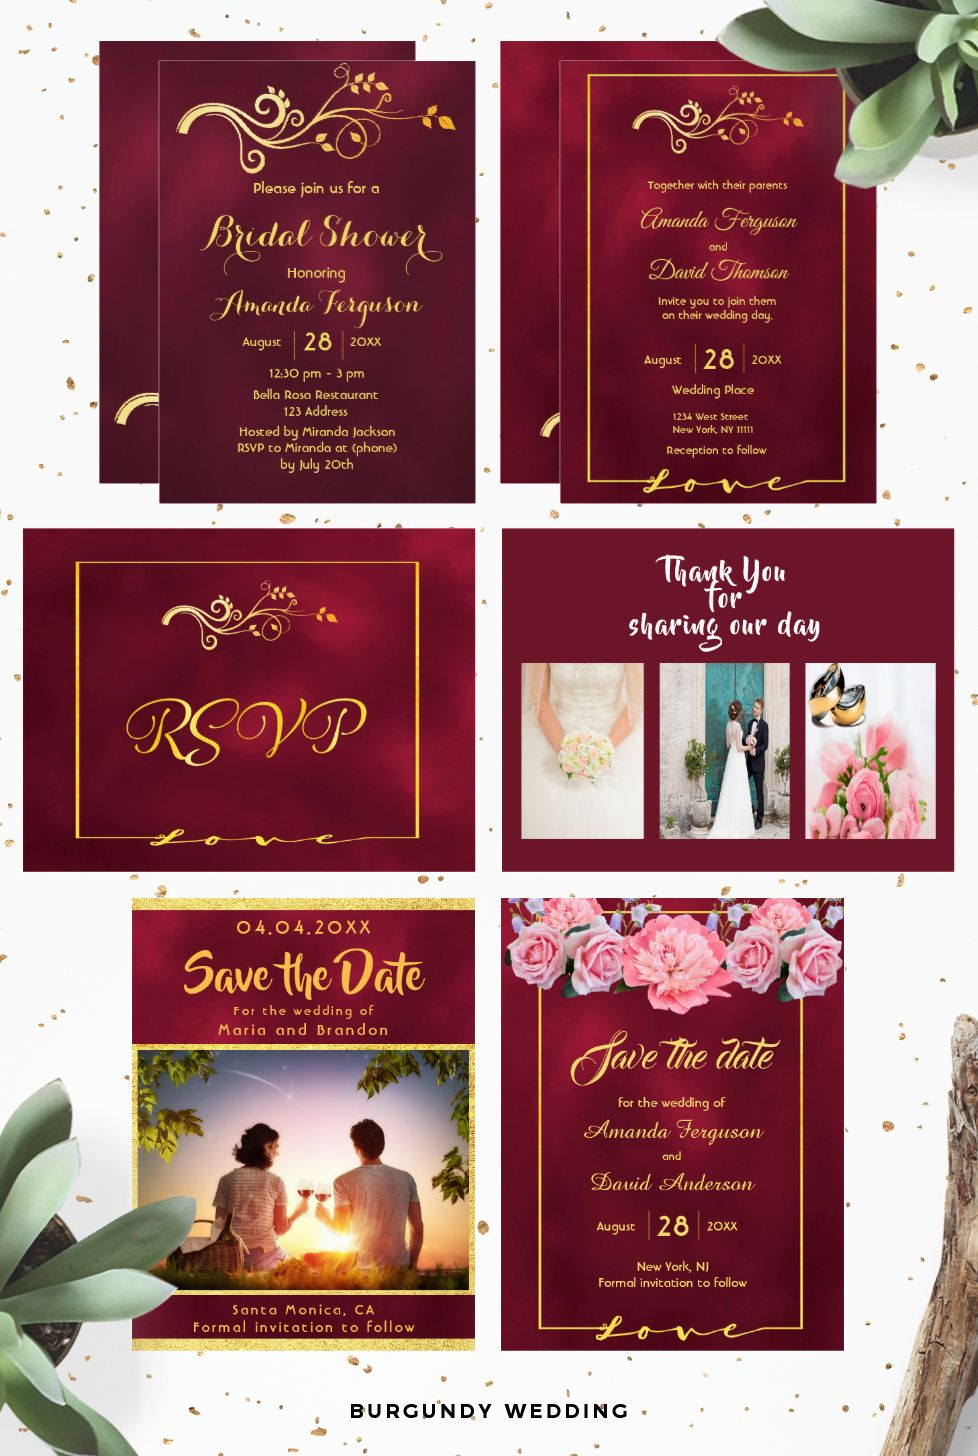 Wedding invitations, save the date cards, bridal shower invitations ...